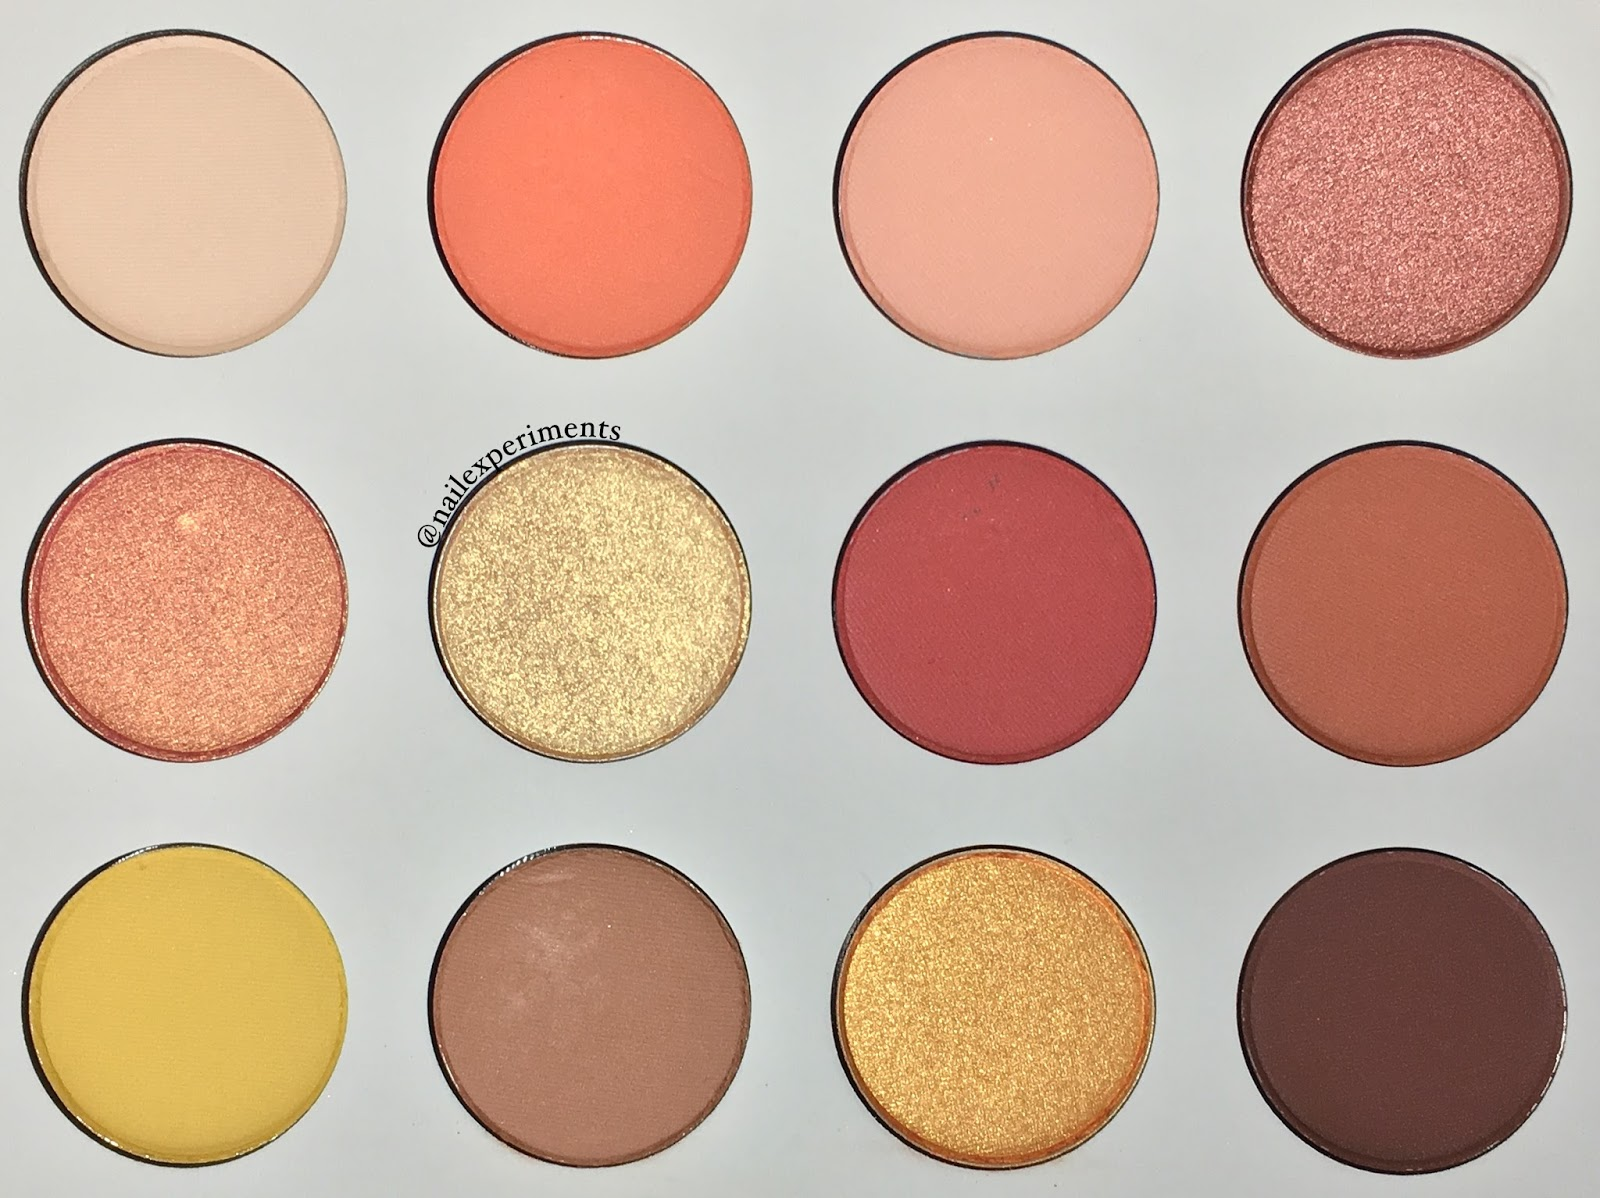 ColourPop Yes, Please eyeshadow pallet swatches